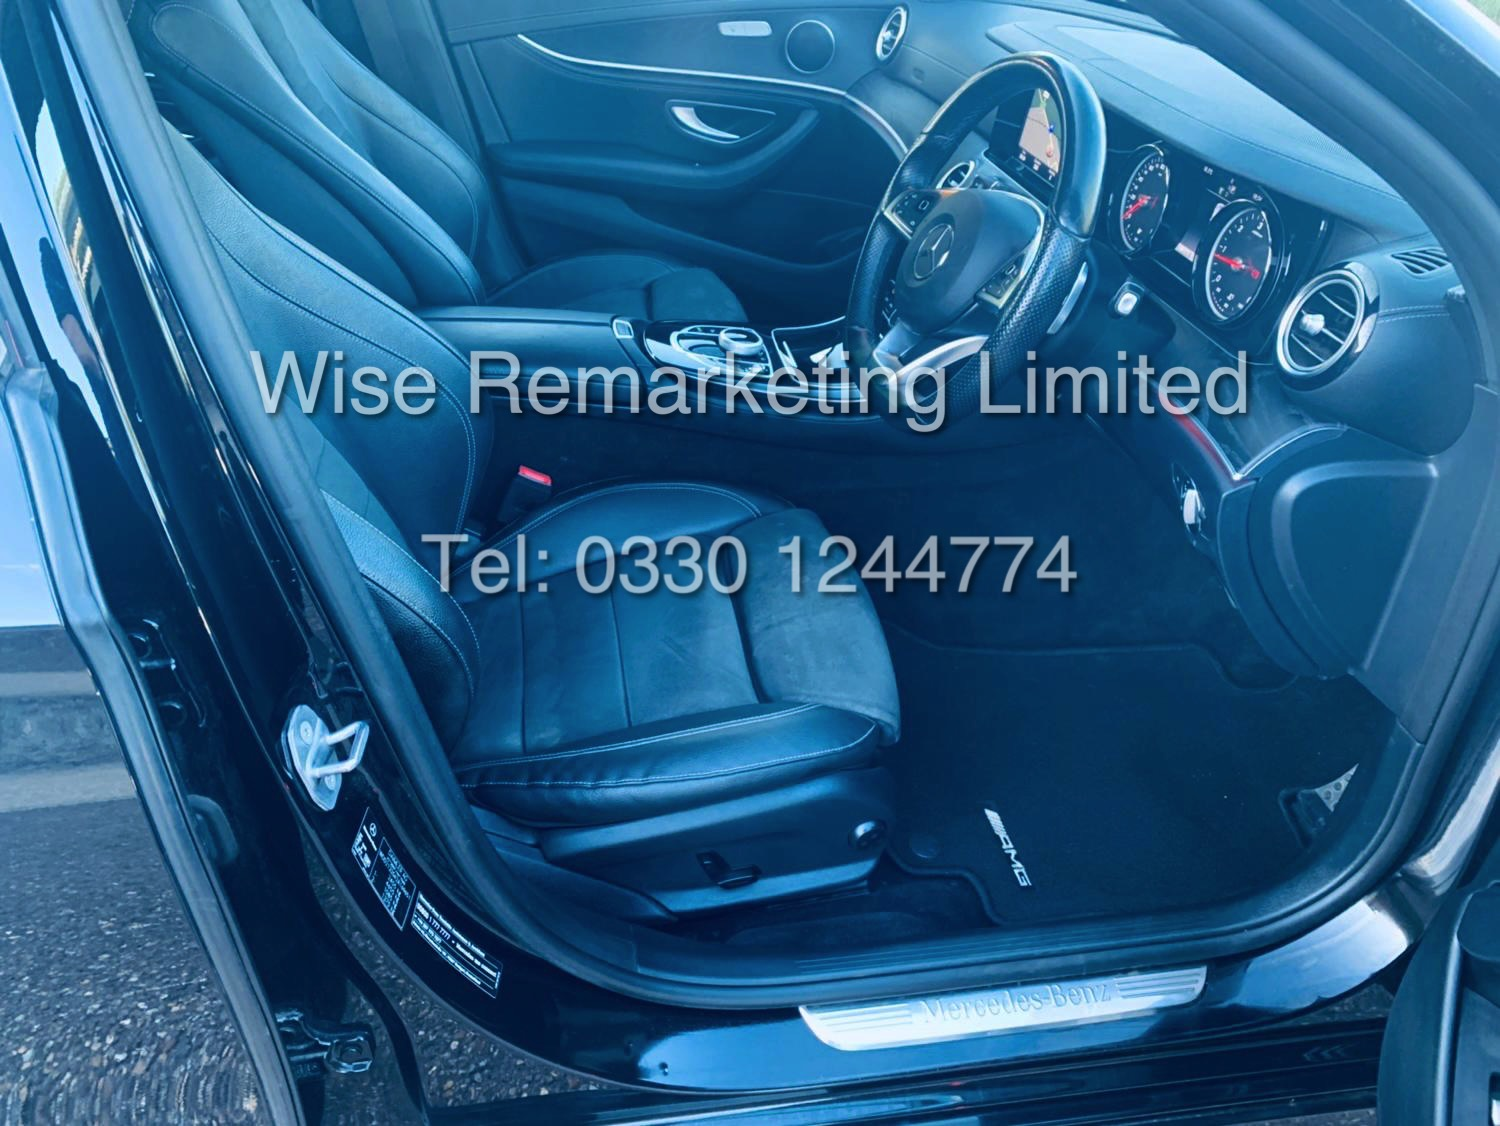 MERCEDES E CLASS ESTATE E220D AMG LINE 2017 / 9G -TRONIC / *LOW MILES* / 1 OWNER - Image 15 of 42